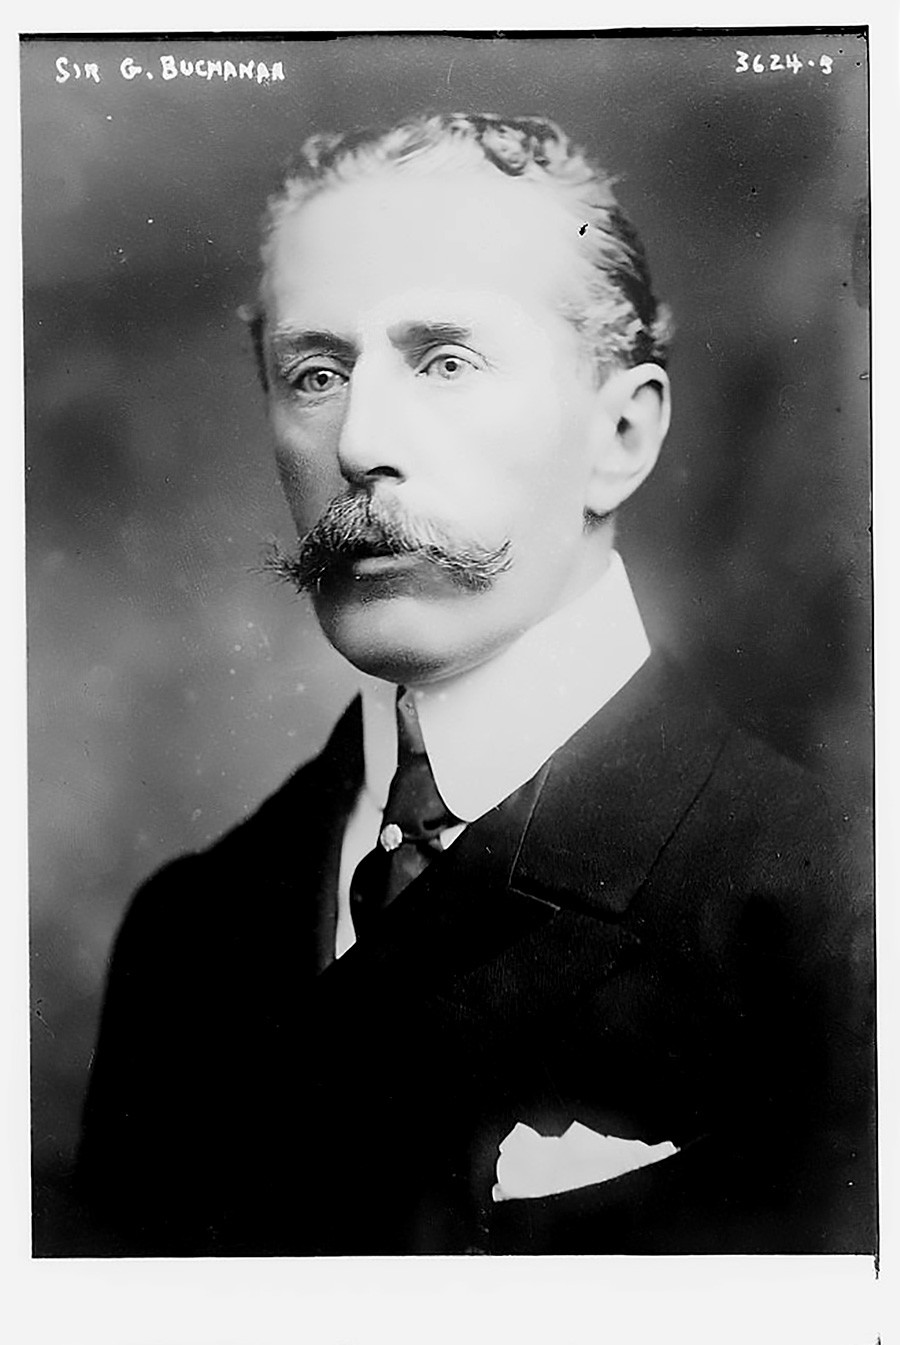 Sir George William Buchanan leta 1915